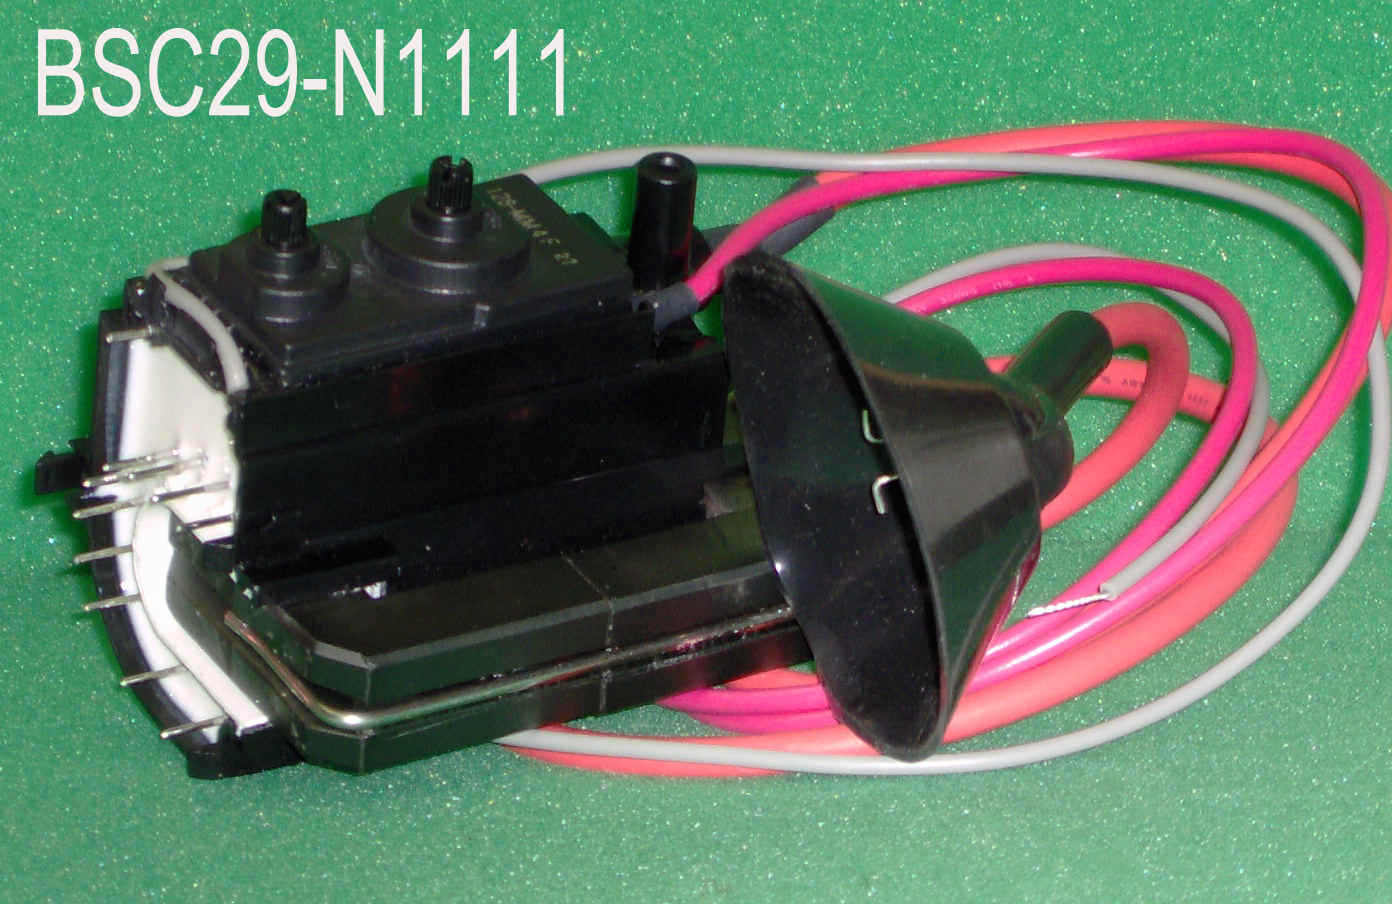 FBT Prima TV model 774-15580, Advent Q328